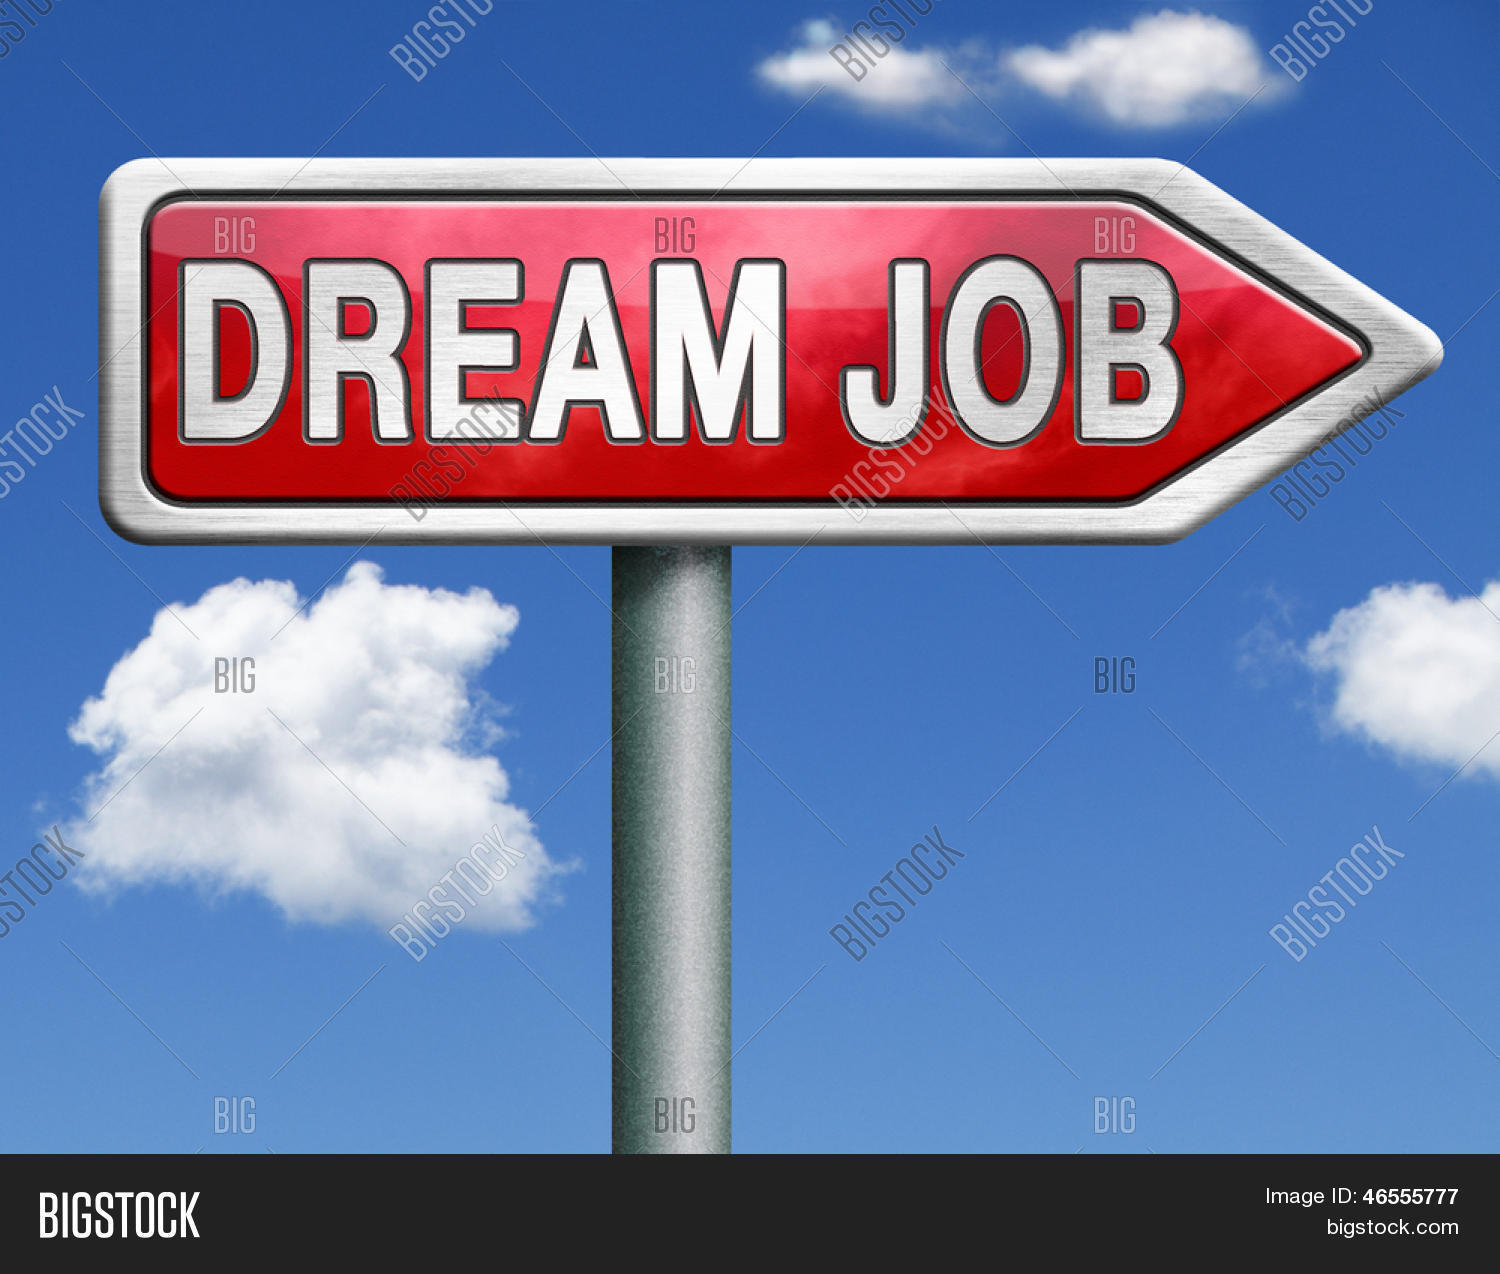 job search road sign vacancy for jobs dream career move help job search road sign vacancy for jobs dream career move help wanted job ad recruitment